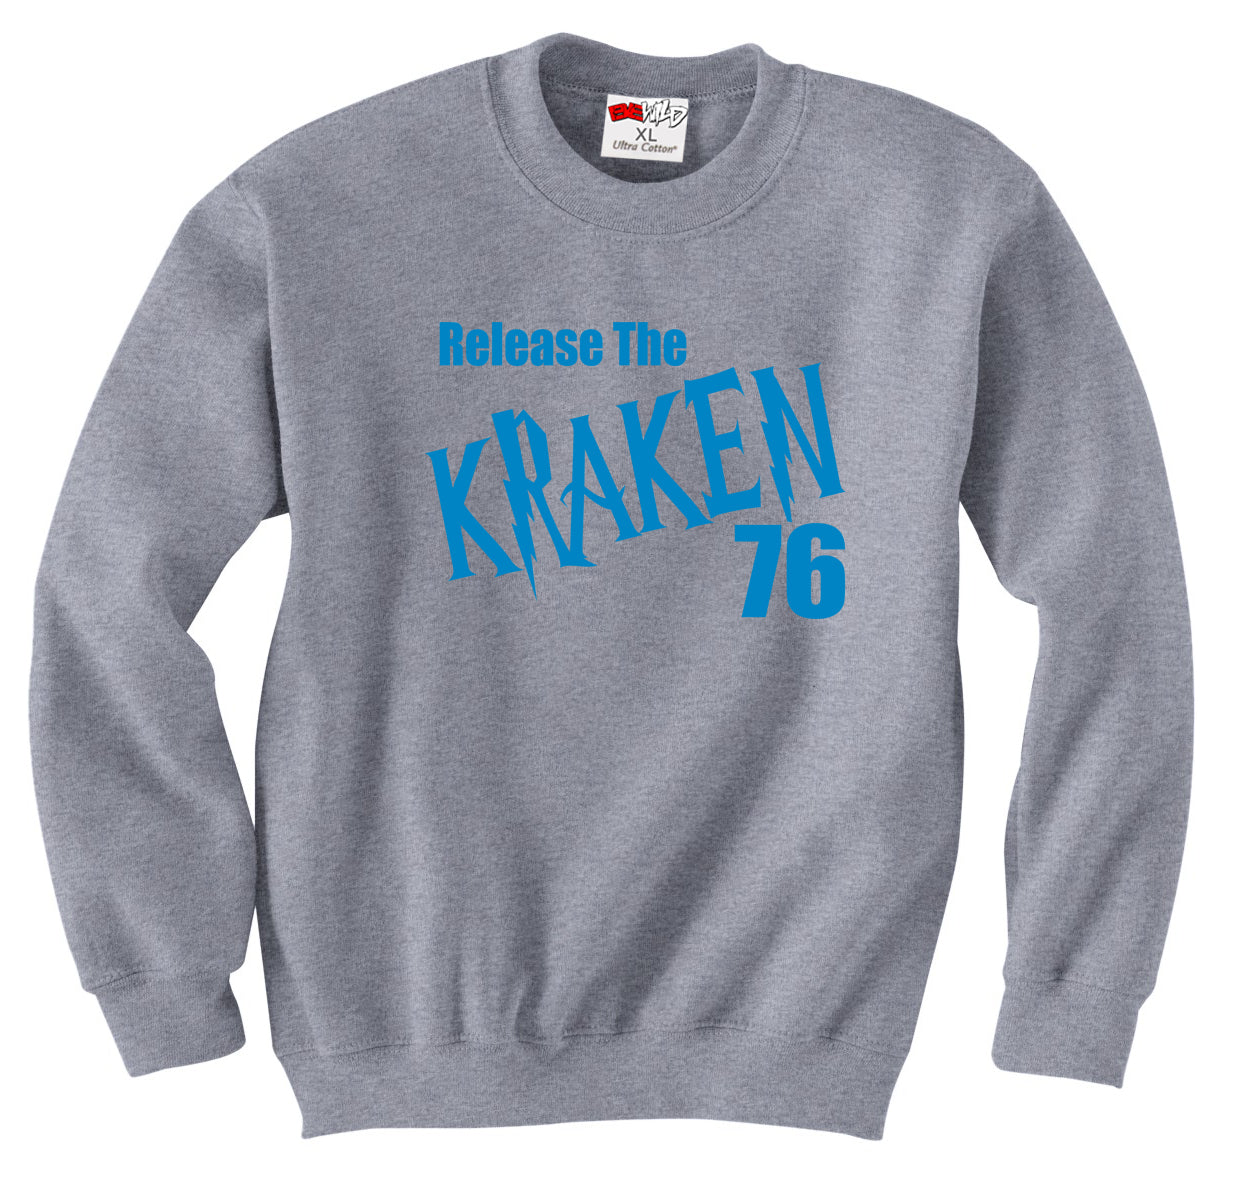 Hardy Release The Kraken Carolina  Crewneck Sweatshirt